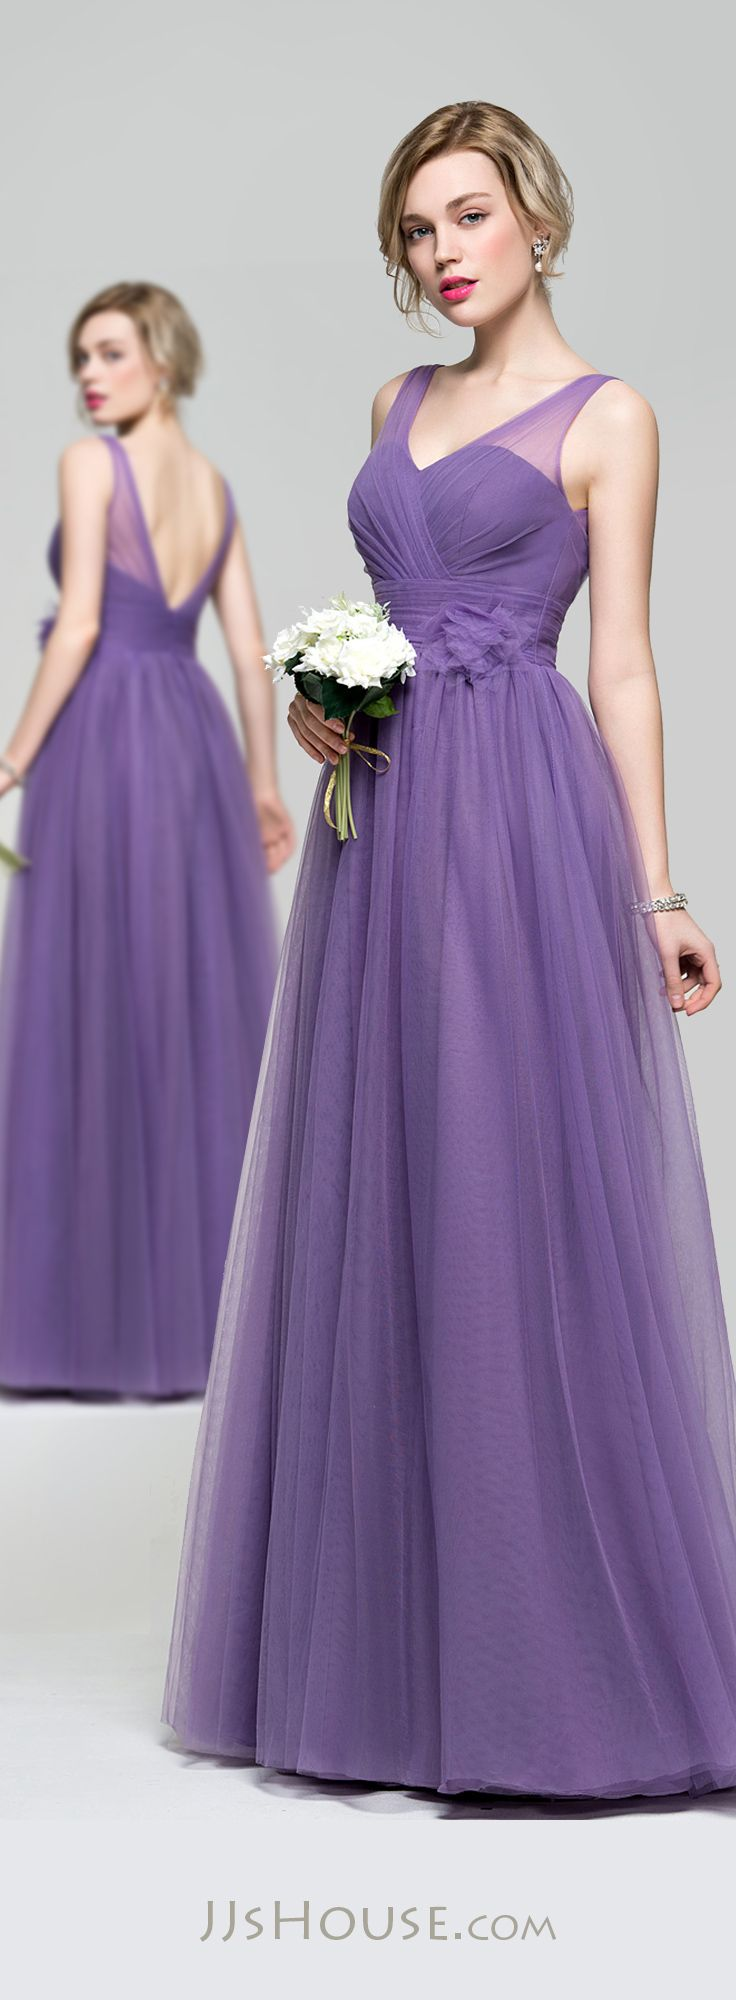 A-Line/Princess V-neck Floor-Length Tulle Bridesmaid Dress With ...